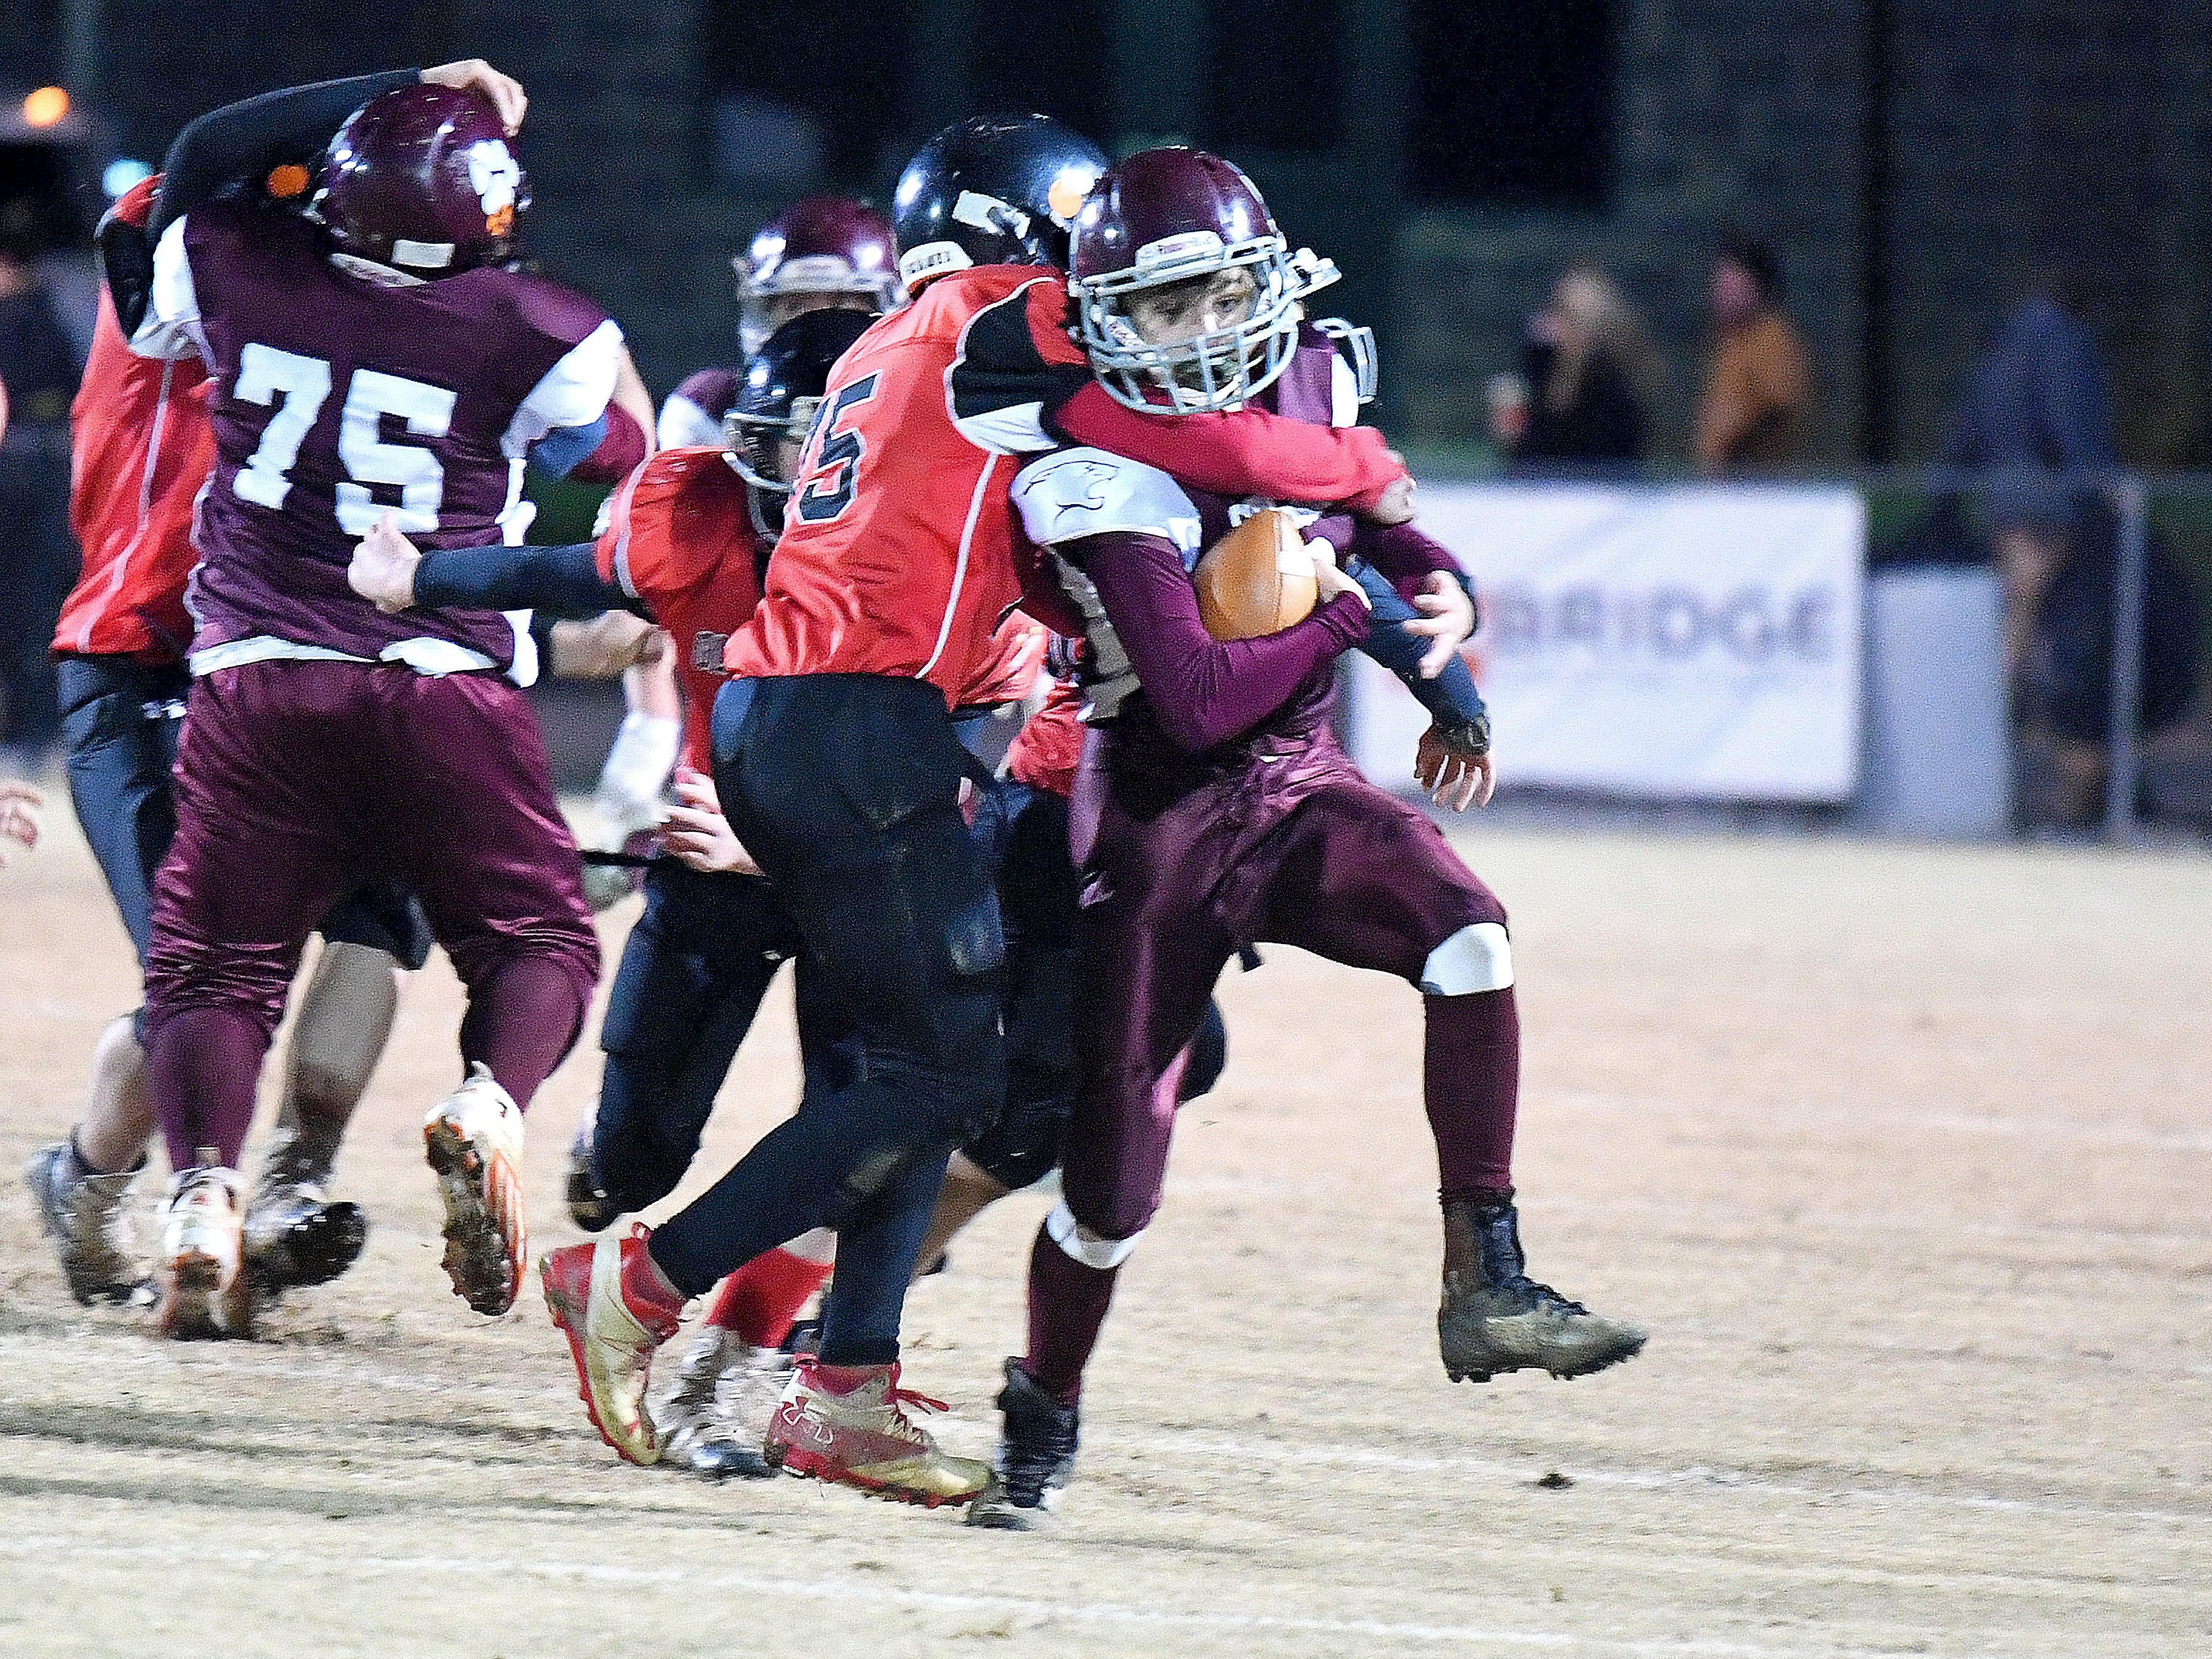 Stuarts Draft's Jacob Bryan is wrapped up from behind during the Augusta County Quarterback Club Seniors Super Bowl in Fishersville on Sunday, Nov. 11, 2018.  RIverheads defeats Stuarts Draft, 38-6.